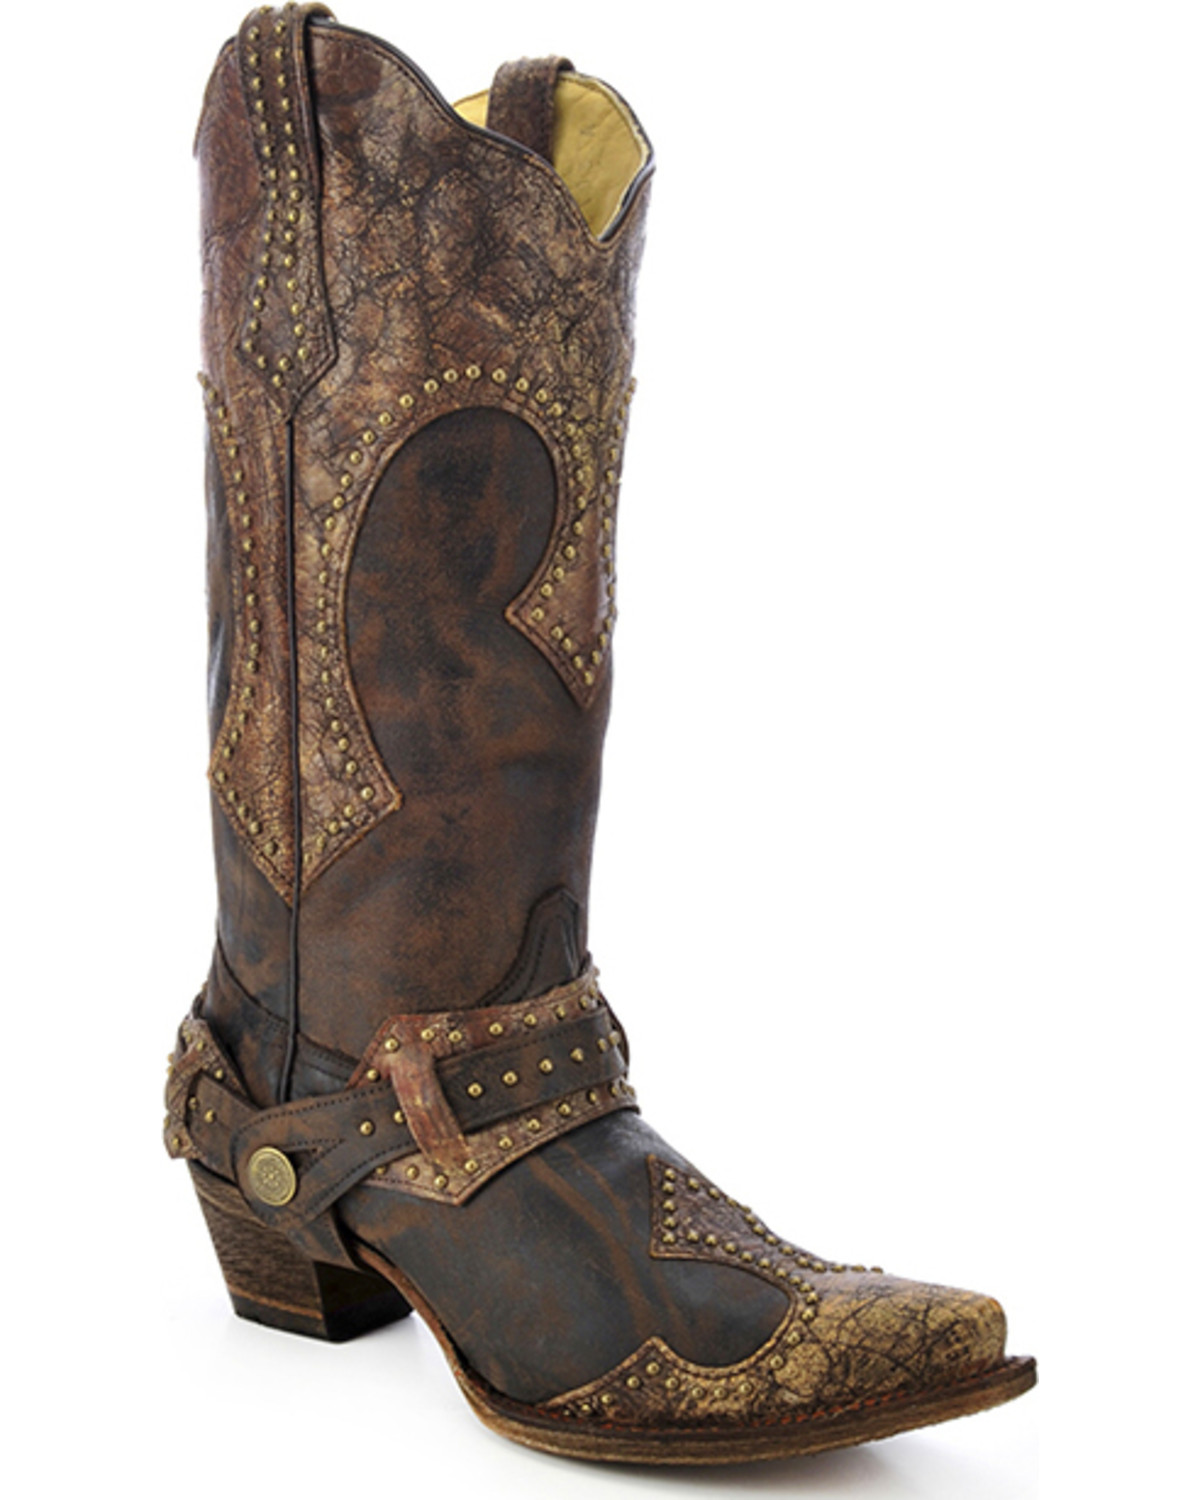 Corral Women U0026 39 S Studded Harness Cowgirl Boots